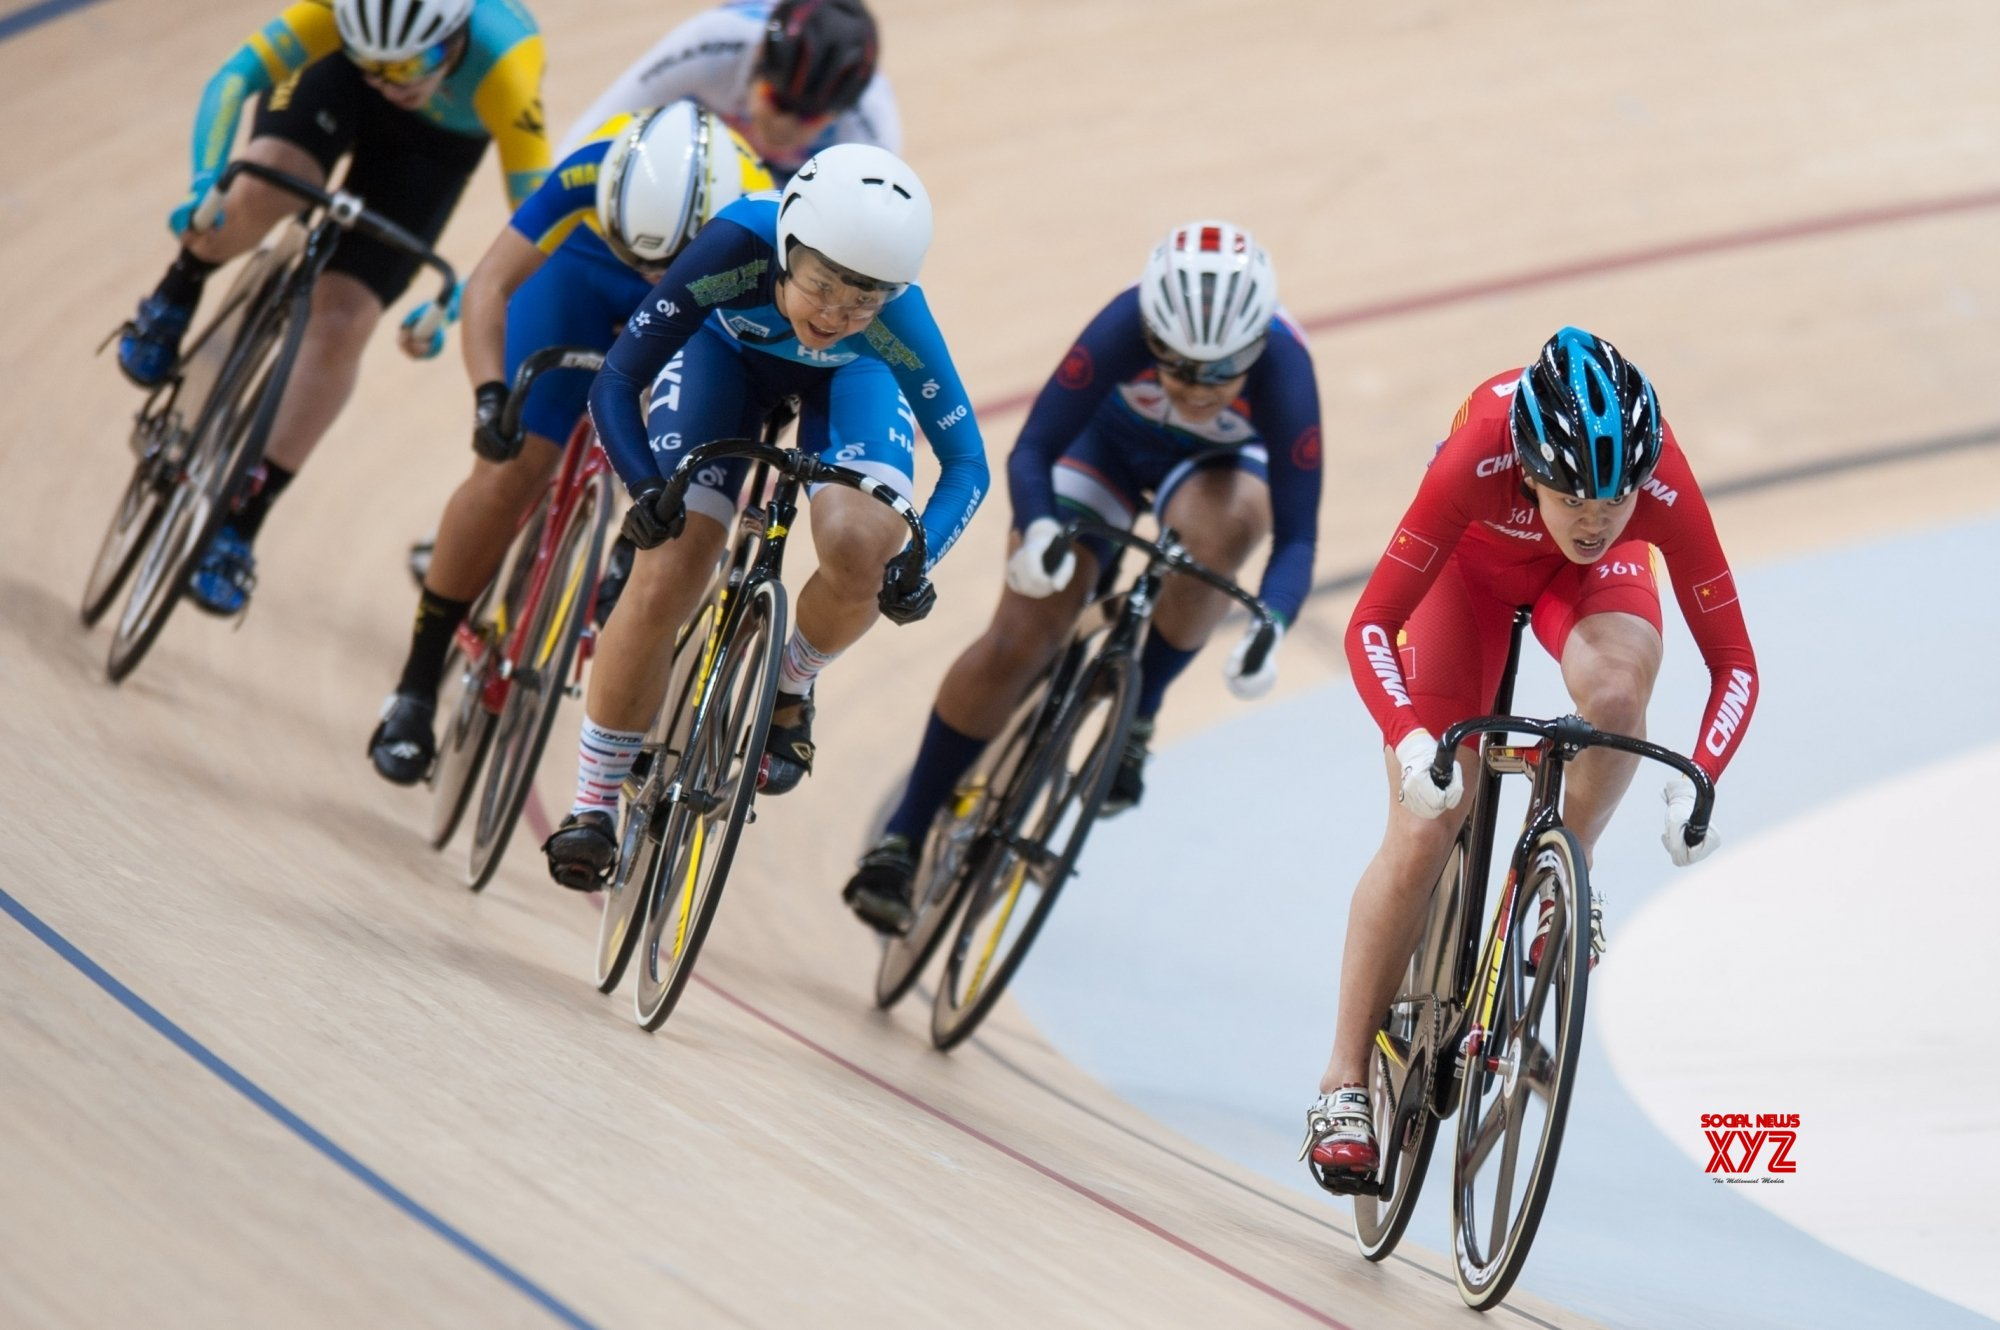 INDONESIA - JAKARTA - CYCLING - JUNIOR ASIAN TRACK CHAMPIONSHIP 2019 - JUNIOR WOMEN'S KEIRIN - FINAL #Gallery